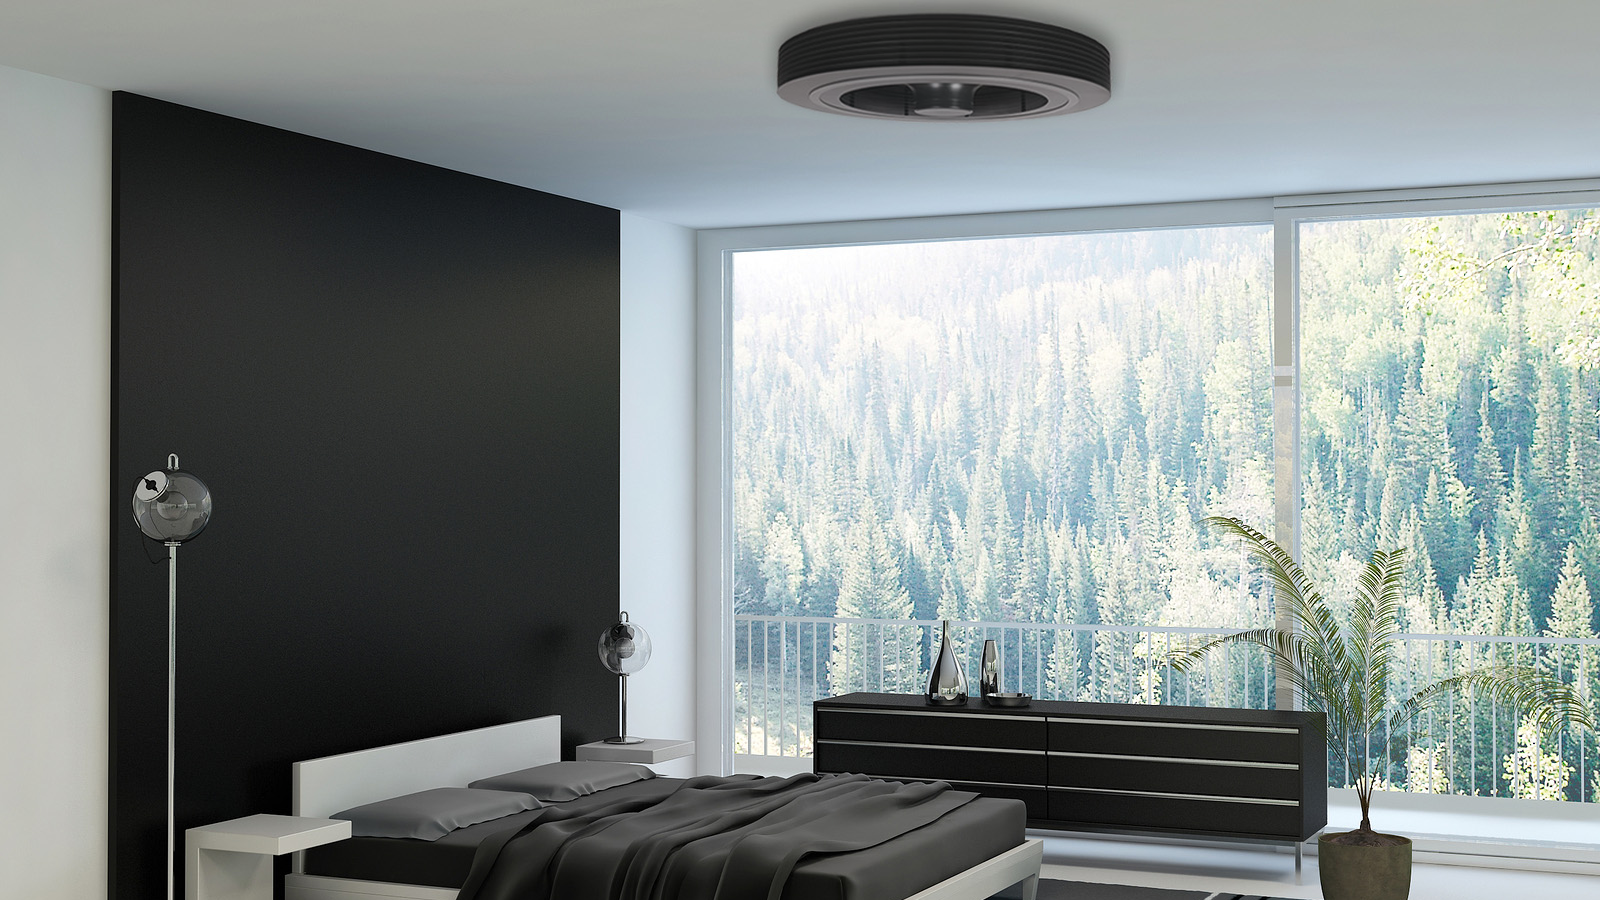 Exhale bladeless ceiling fan  superior performance coupled with adding a  steady equilibrium of air